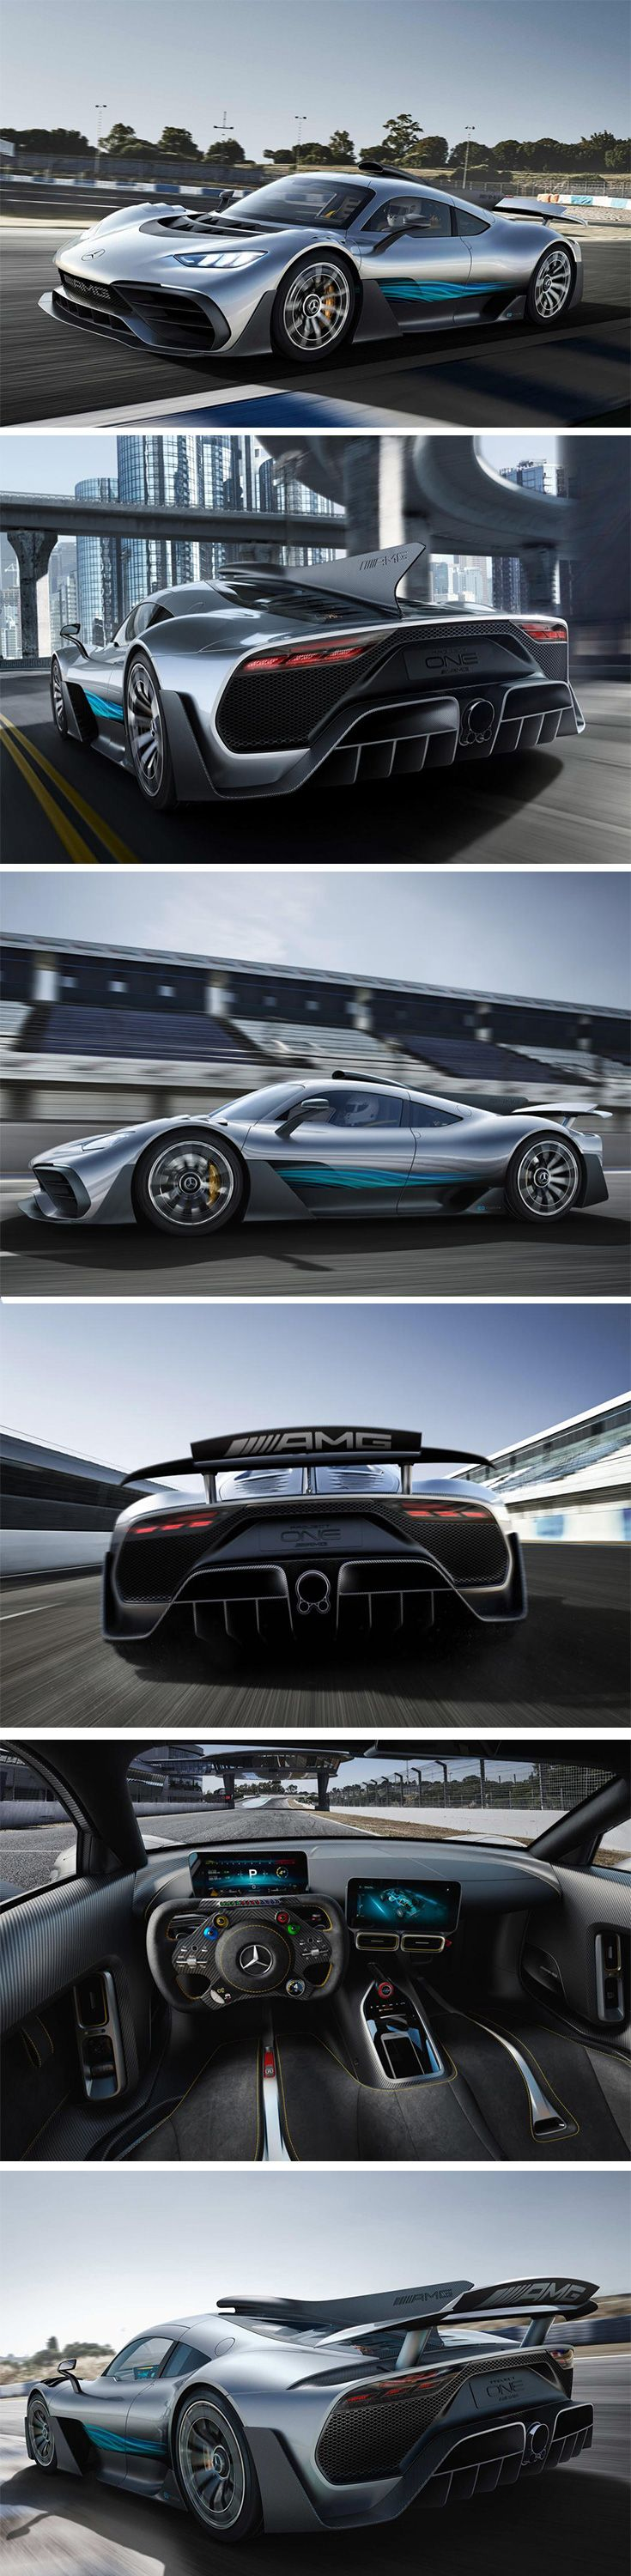 Meet Mercedes' Project ONE… and before you ask, YES, it's coming to life. Unveiled just today at the International Motor Show in Frankfurt, it not only takes inspiration from the Benz F1 team, its guts are actually the same 1.6-liter V6 hybrid that's led the brand to the 2017 F1 championship. It sports more than 1000 ponies and a top speed of more than 217 mph. That's just… insane.